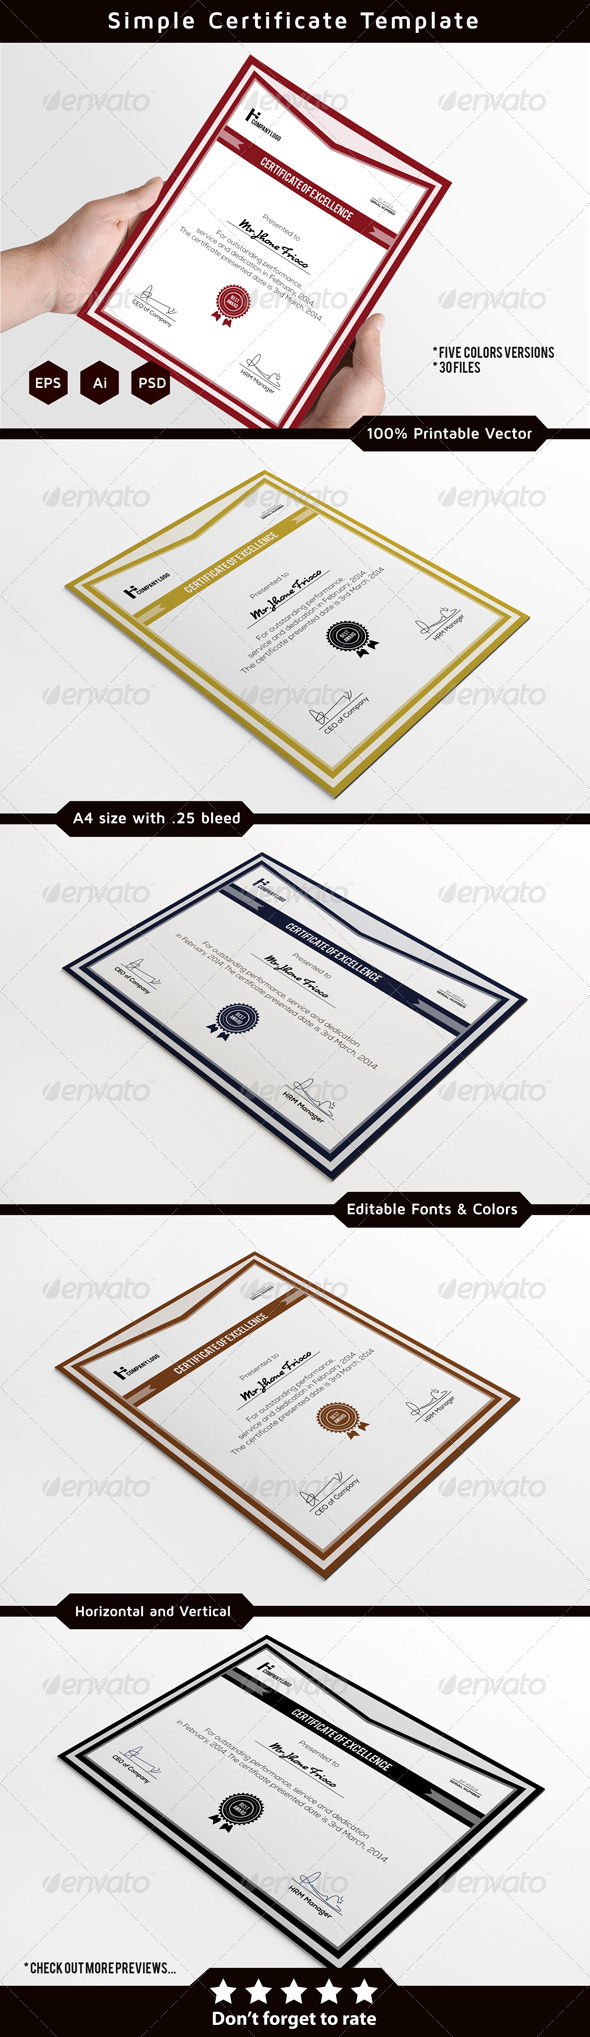 GraphicRiver Corporate Certificate Template 7336207